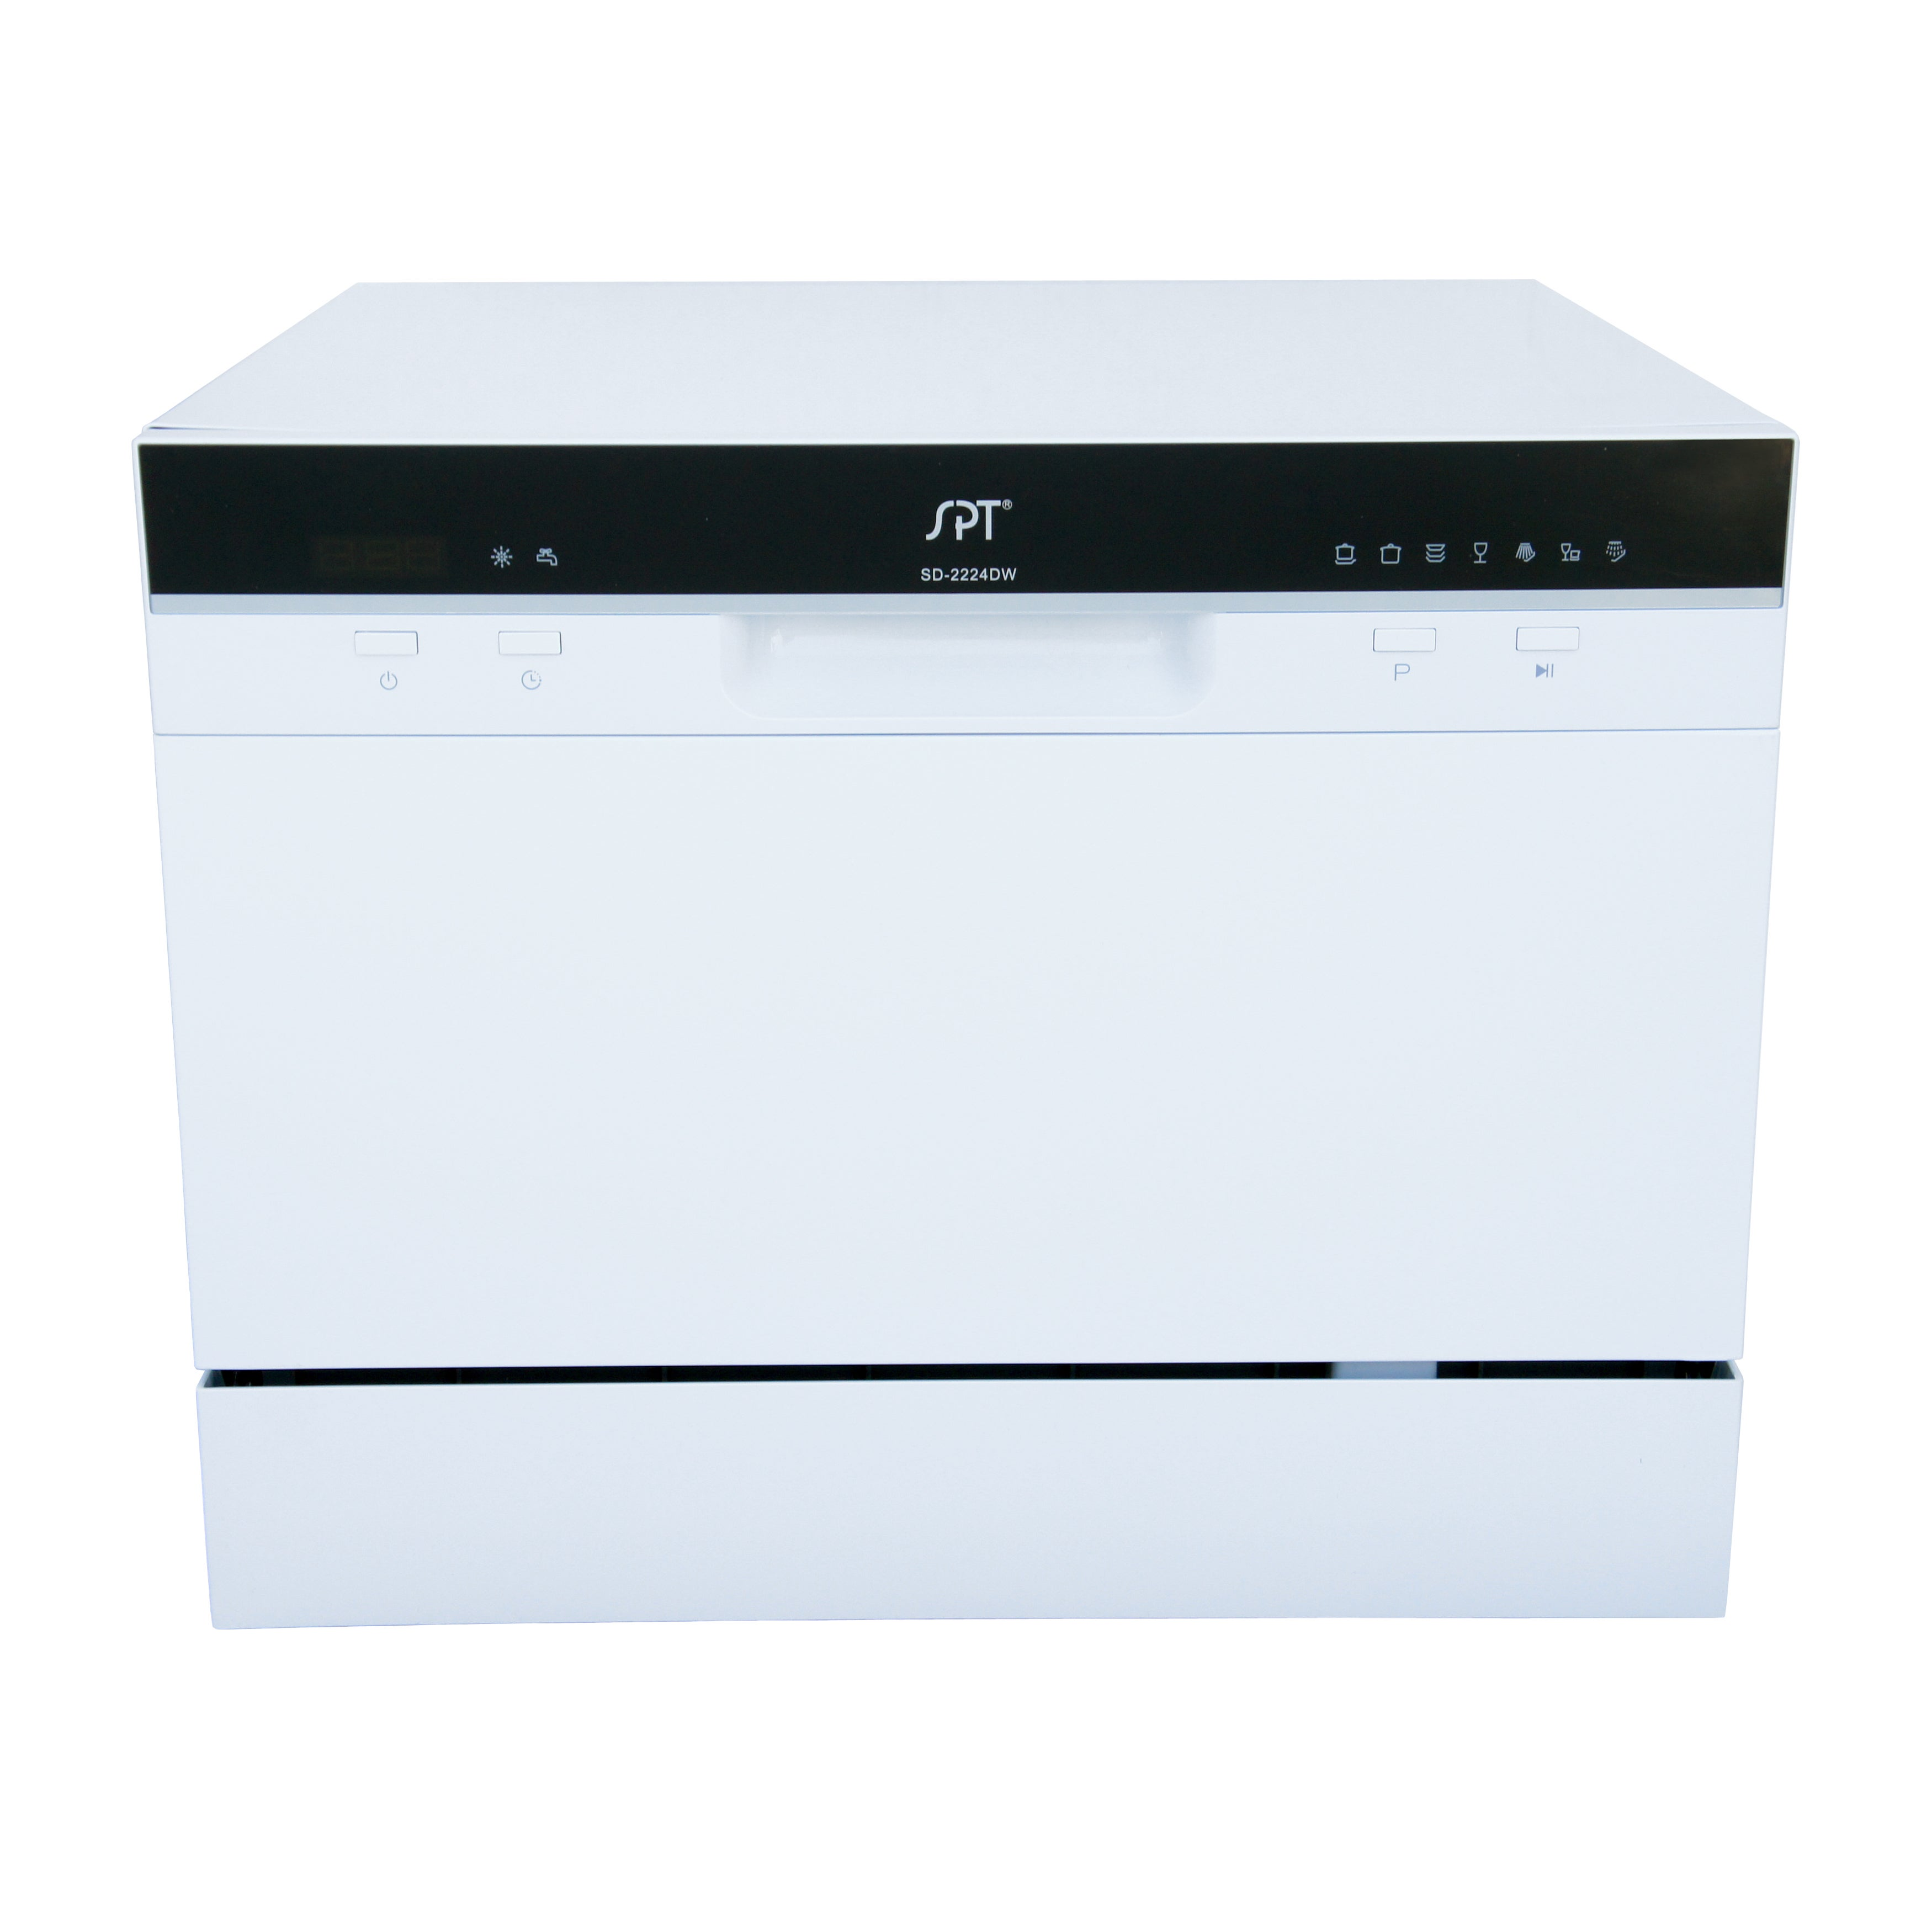 SPT 6 Place Setting White Countertop Dishwasher with Dela...